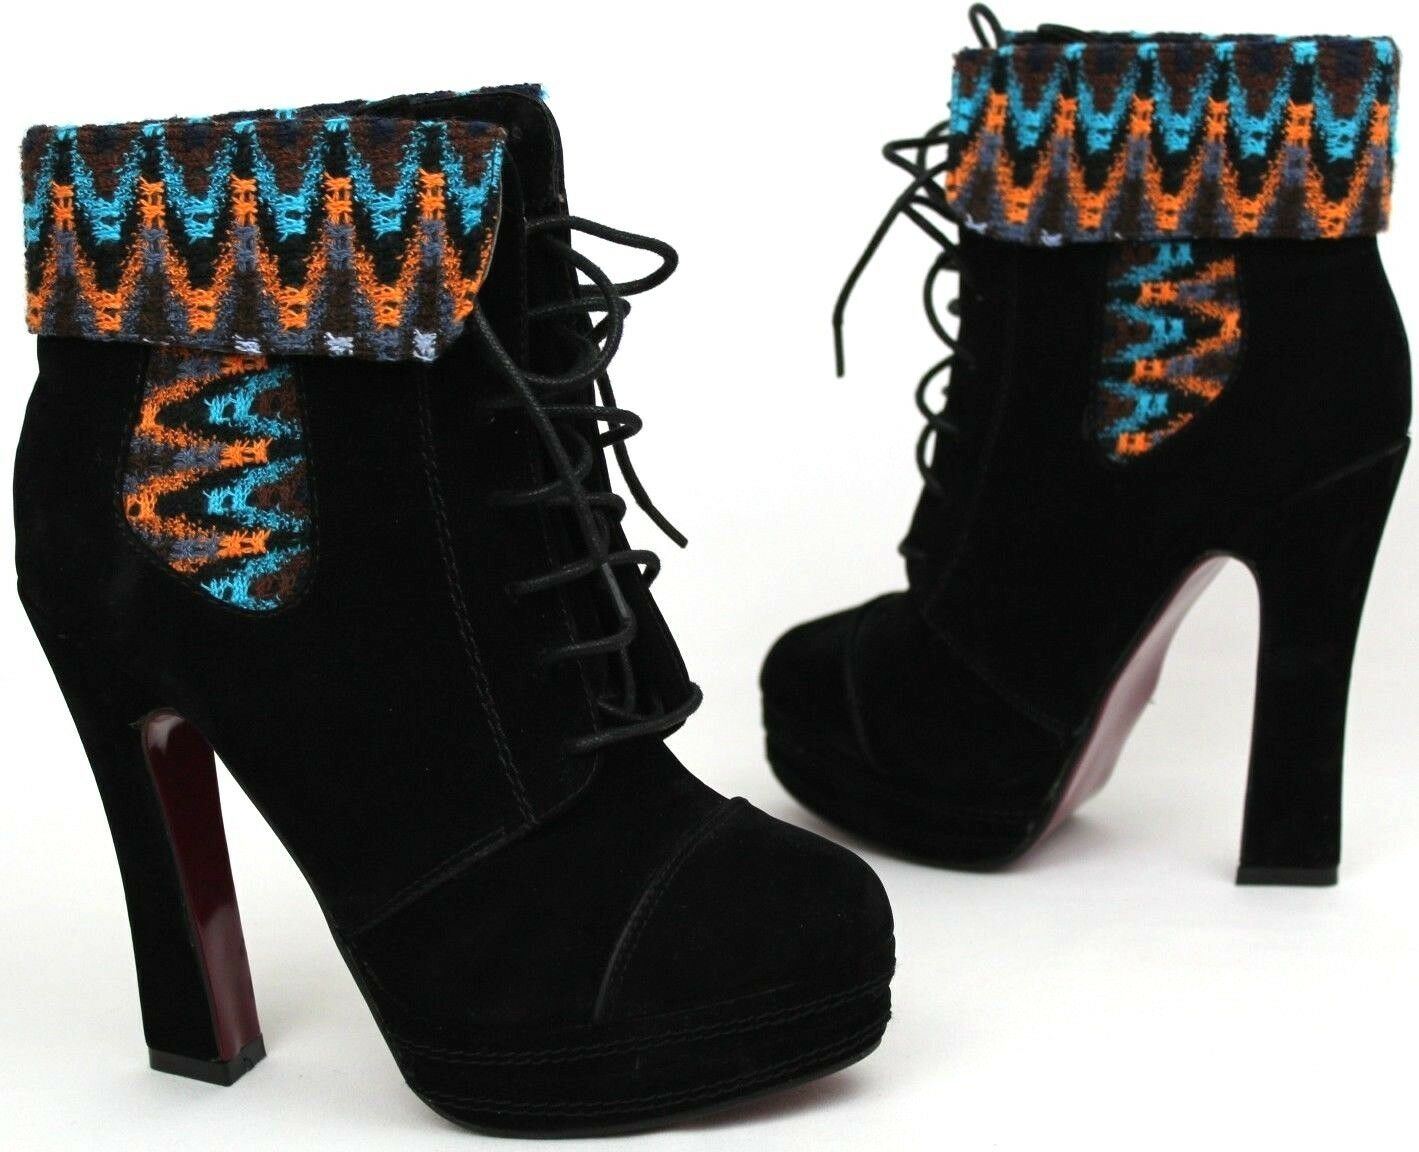 Ladies Boots UK 5 EUR 38 Black Suede Platform Ankle Lace Up Embroidered Autumn